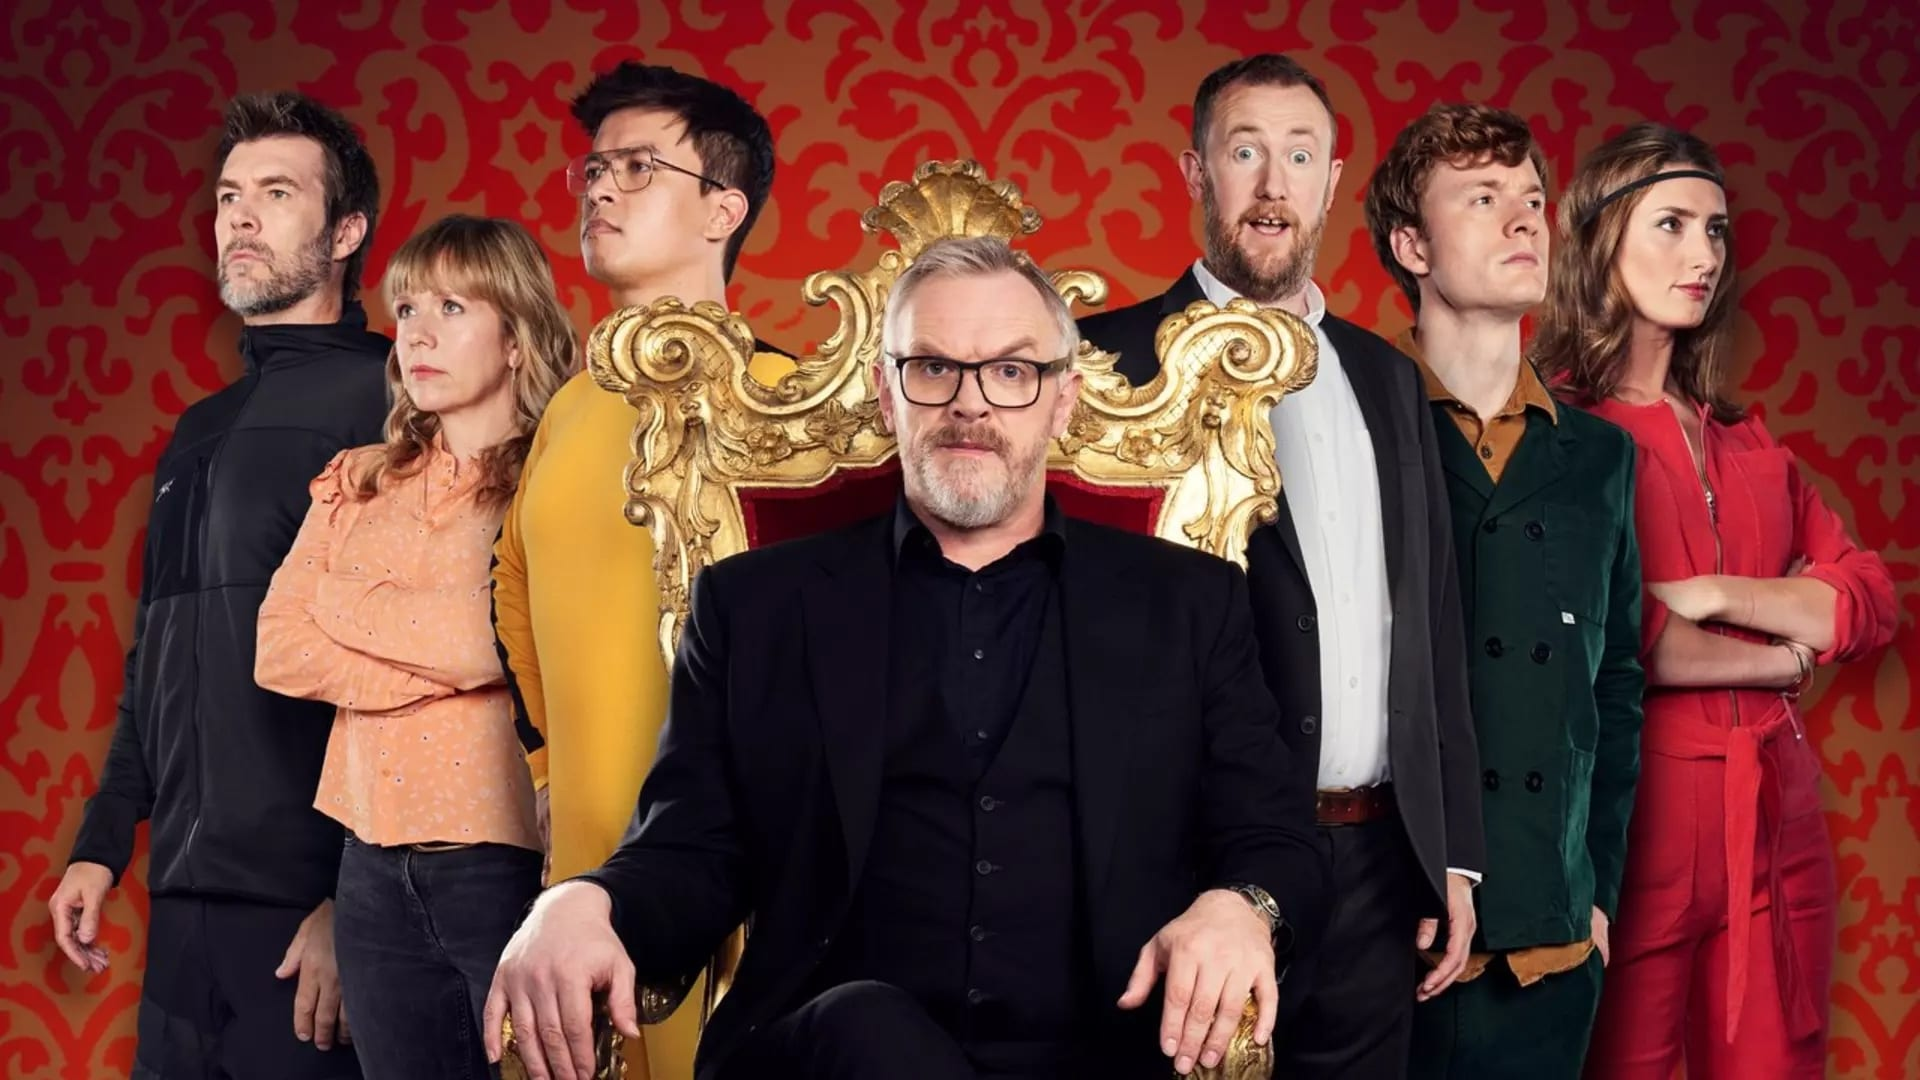 Taskmaster - Season 8 Episode 4 : The Barrel Dad